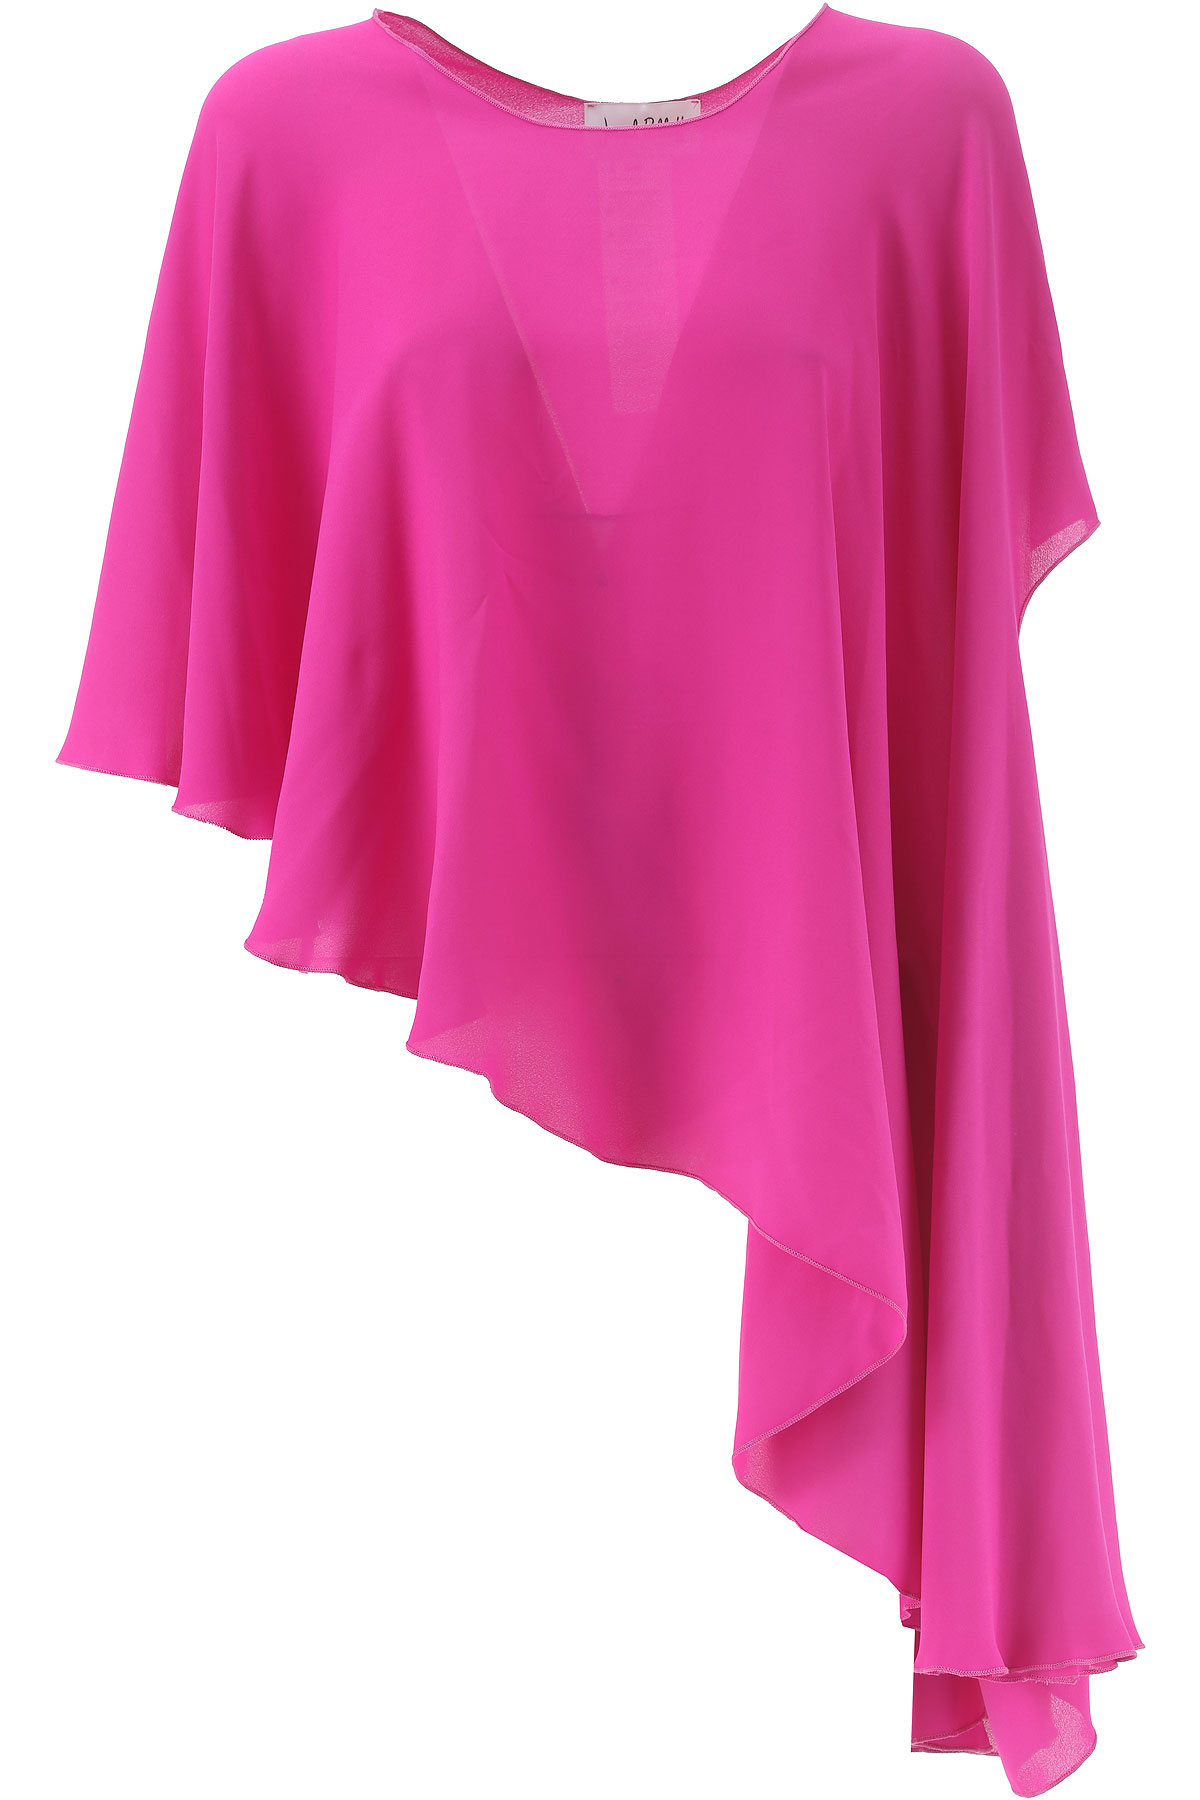 Joseph Ribkoff Top for Women On Sale in Outlet, fuxia, polyester, 2019, 4